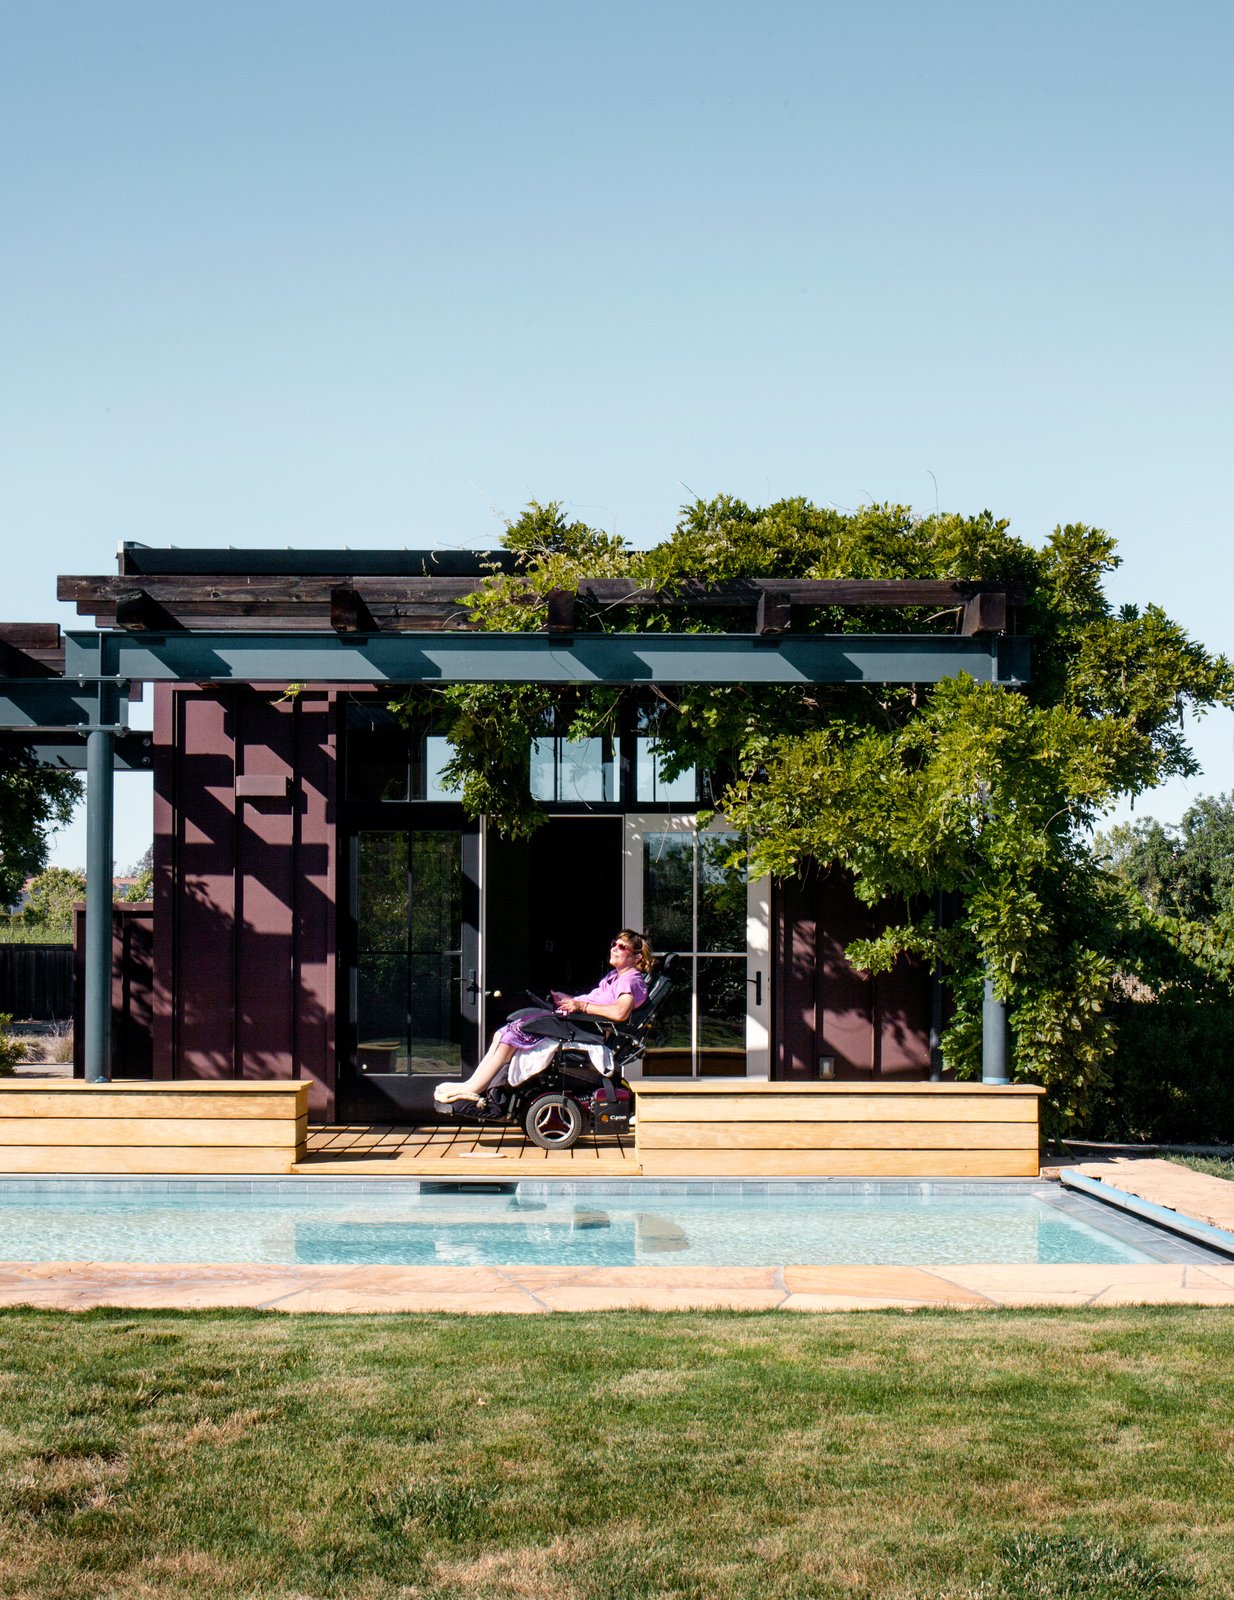 The 11 Most Influential Architecture Trends of 2019